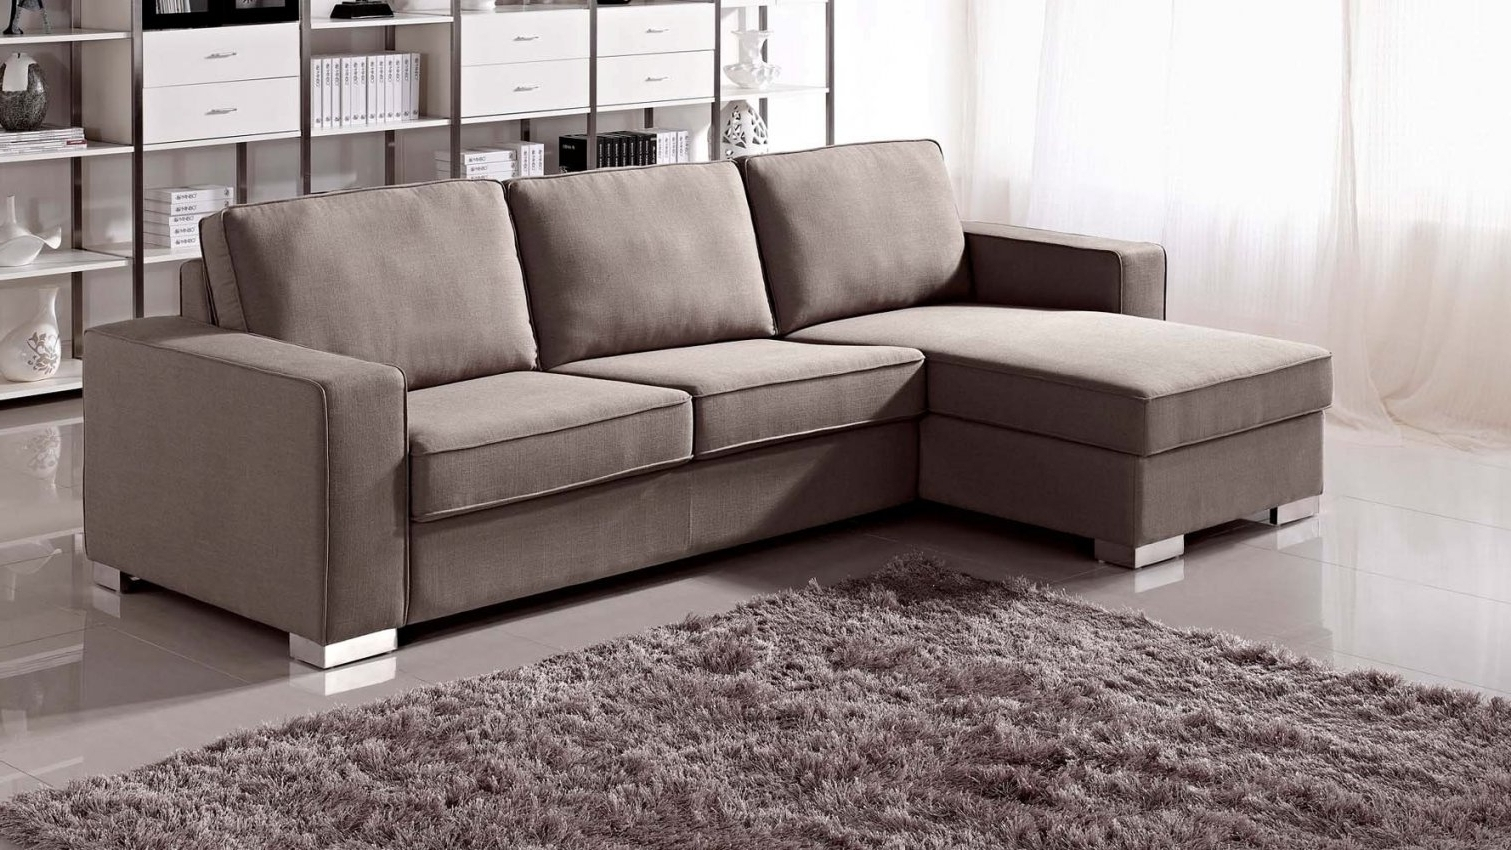 Sectional Sleeper Sofa With Chaise 29 In Sofa Design Ideas Pertaining To Current Sofa Chaise Convertible Beds (View 9 of 15)